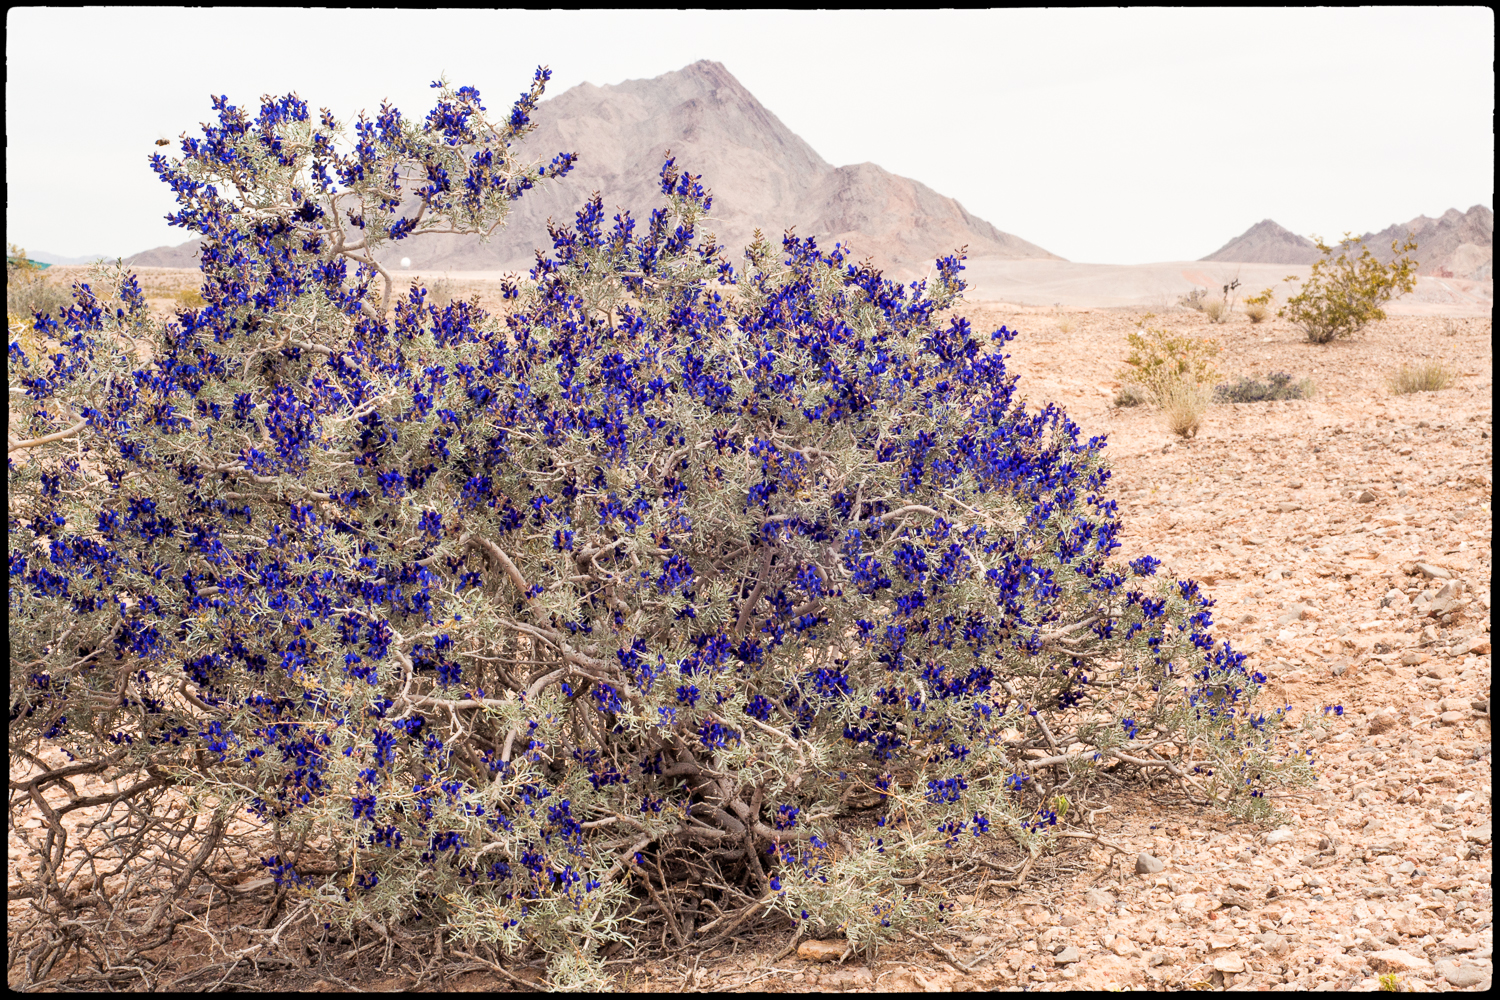 Indigo bush near Sunrise Trail Head.